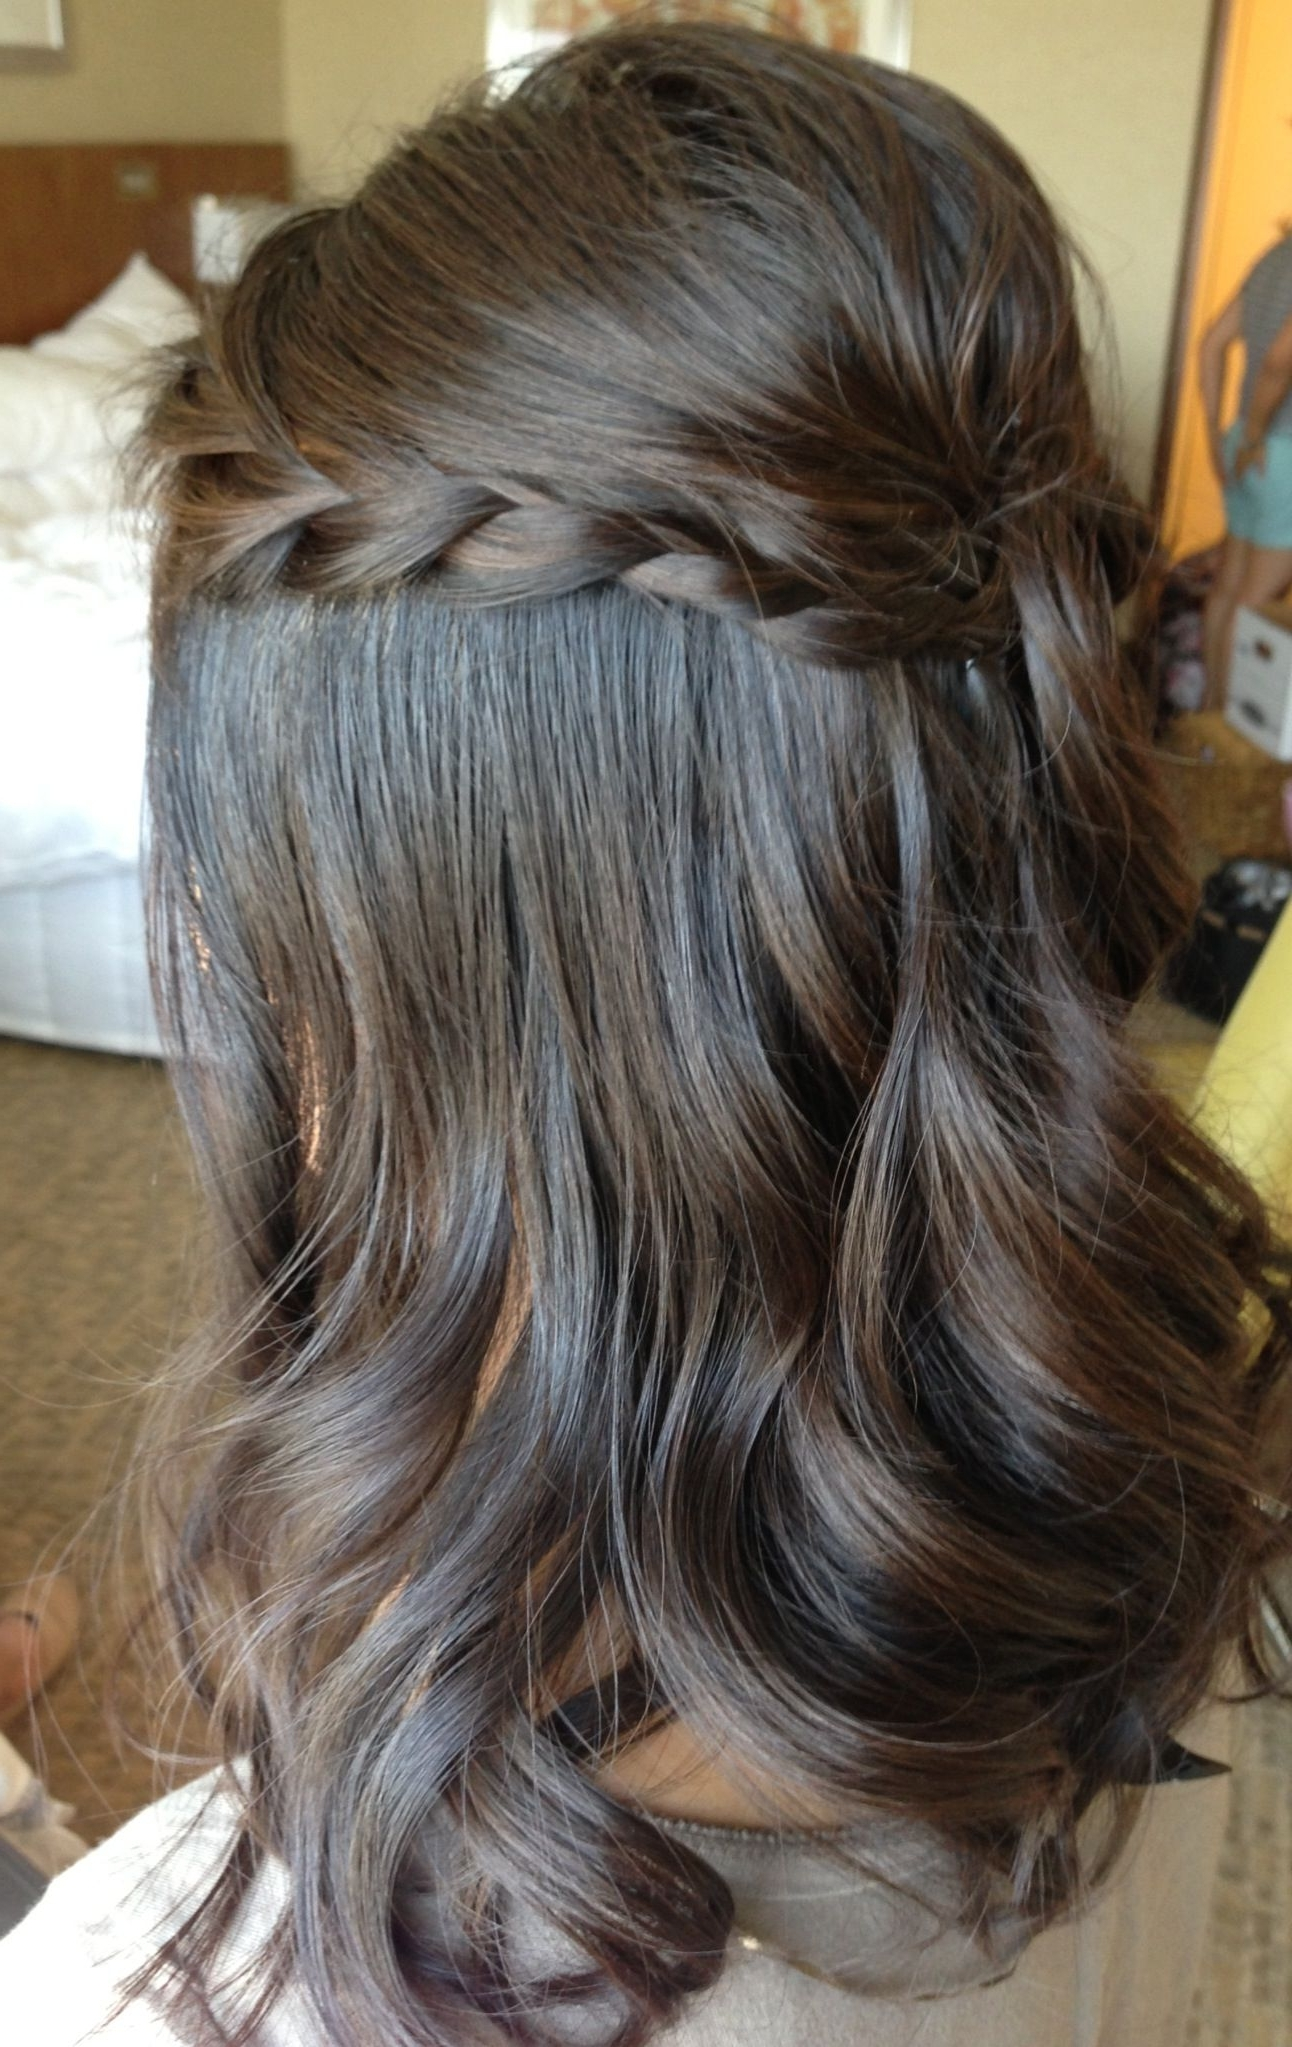 Fashionable Half Up Wedding Hairstyles For Bridesmaids For Wedding Updo, Wedding Hair, Bridal Hair, Braids, Half Up Half Down (View 5 of 15)